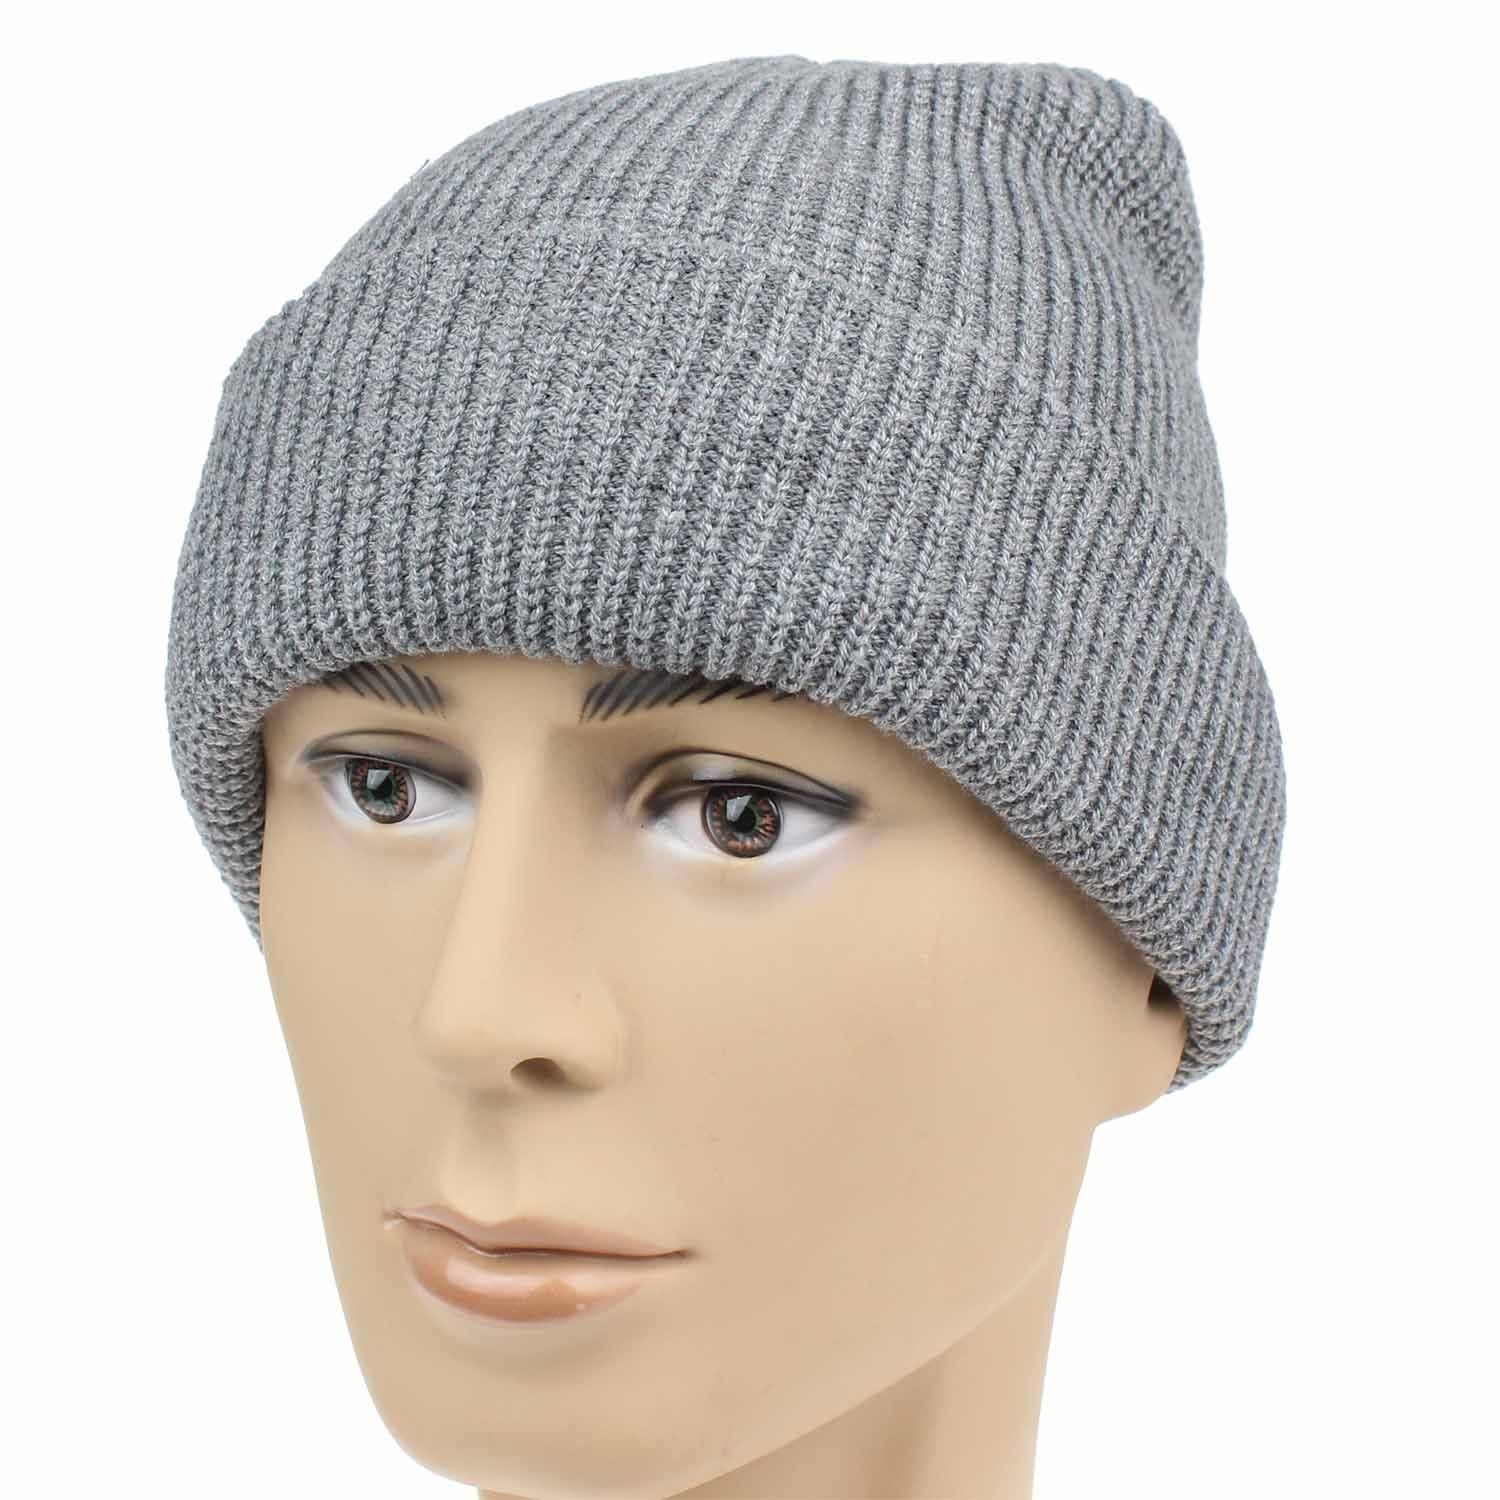 950ae5ace1d96f Hats & Caps, Men's Hats & Caps, Skullies & Beanies, Unisex Thick Cable Knit  Beanie Hat Winter Cap Skull Windproof For Men & Women - Grey - CP12MY8LELR # caps ...